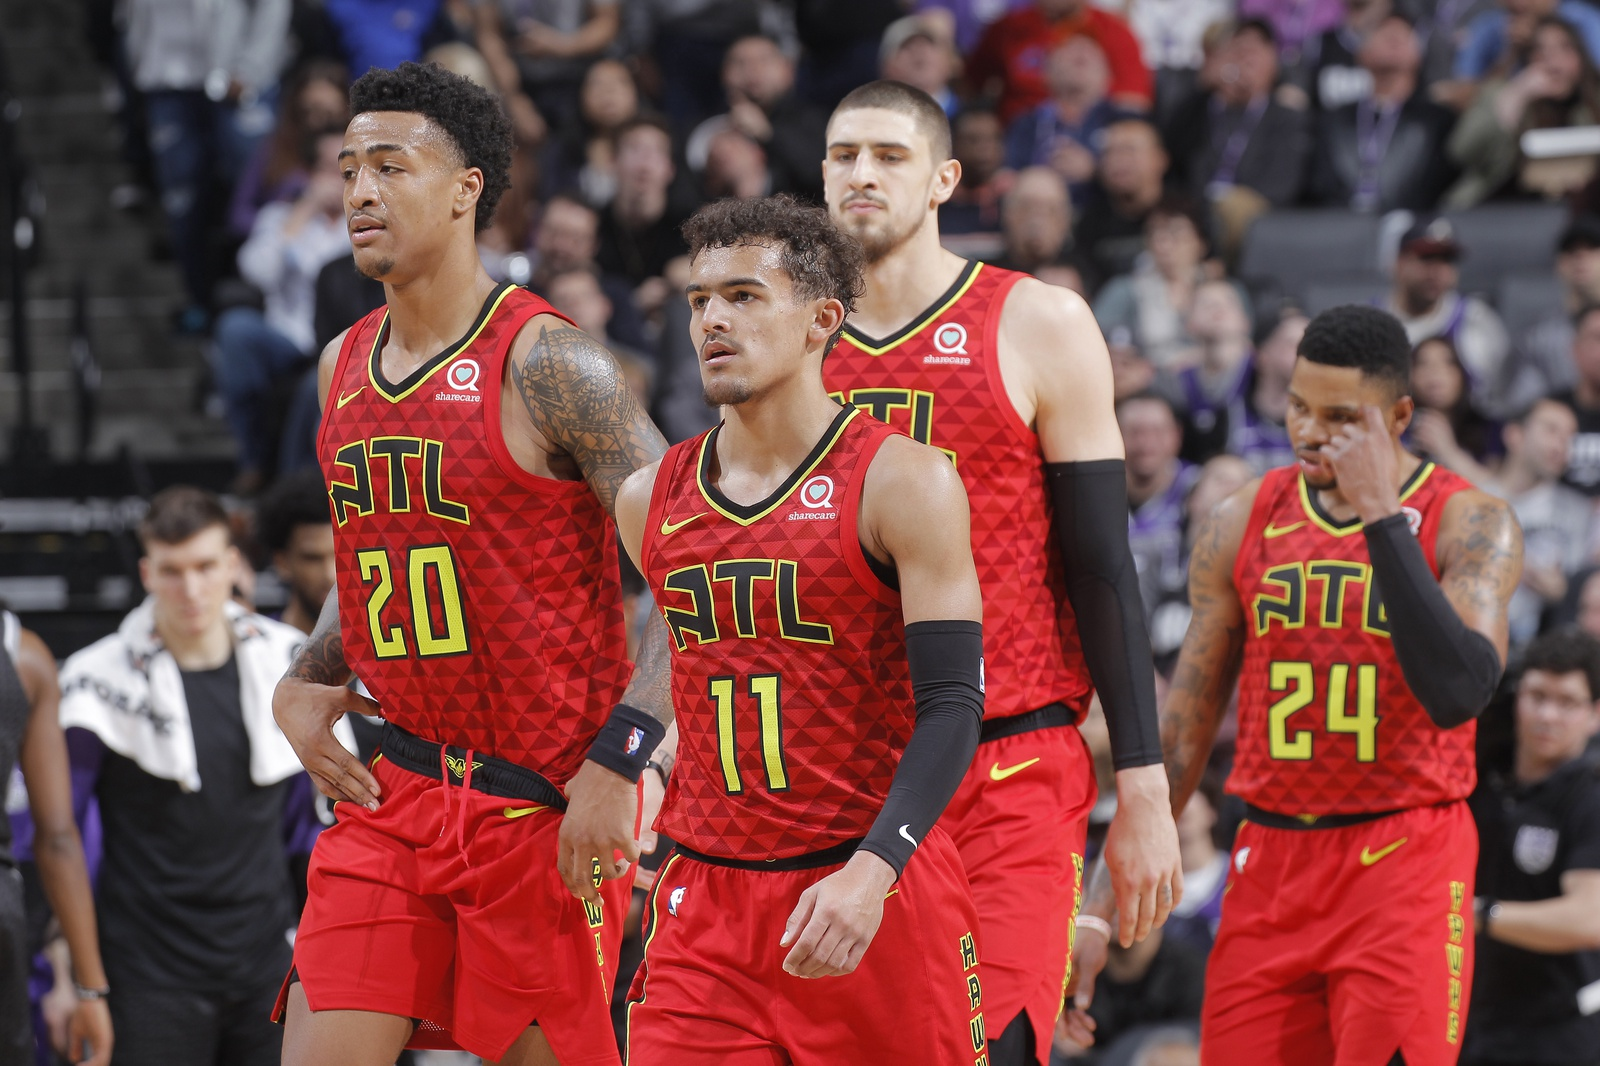 John Collins #20, Trae Young #11, Alex Len #25 and Kent Bazemore #24 of the Atlanta Hawks face the Sacramento Kings on January 30, 2019 at Golden 1 Center in Sacramento, California.